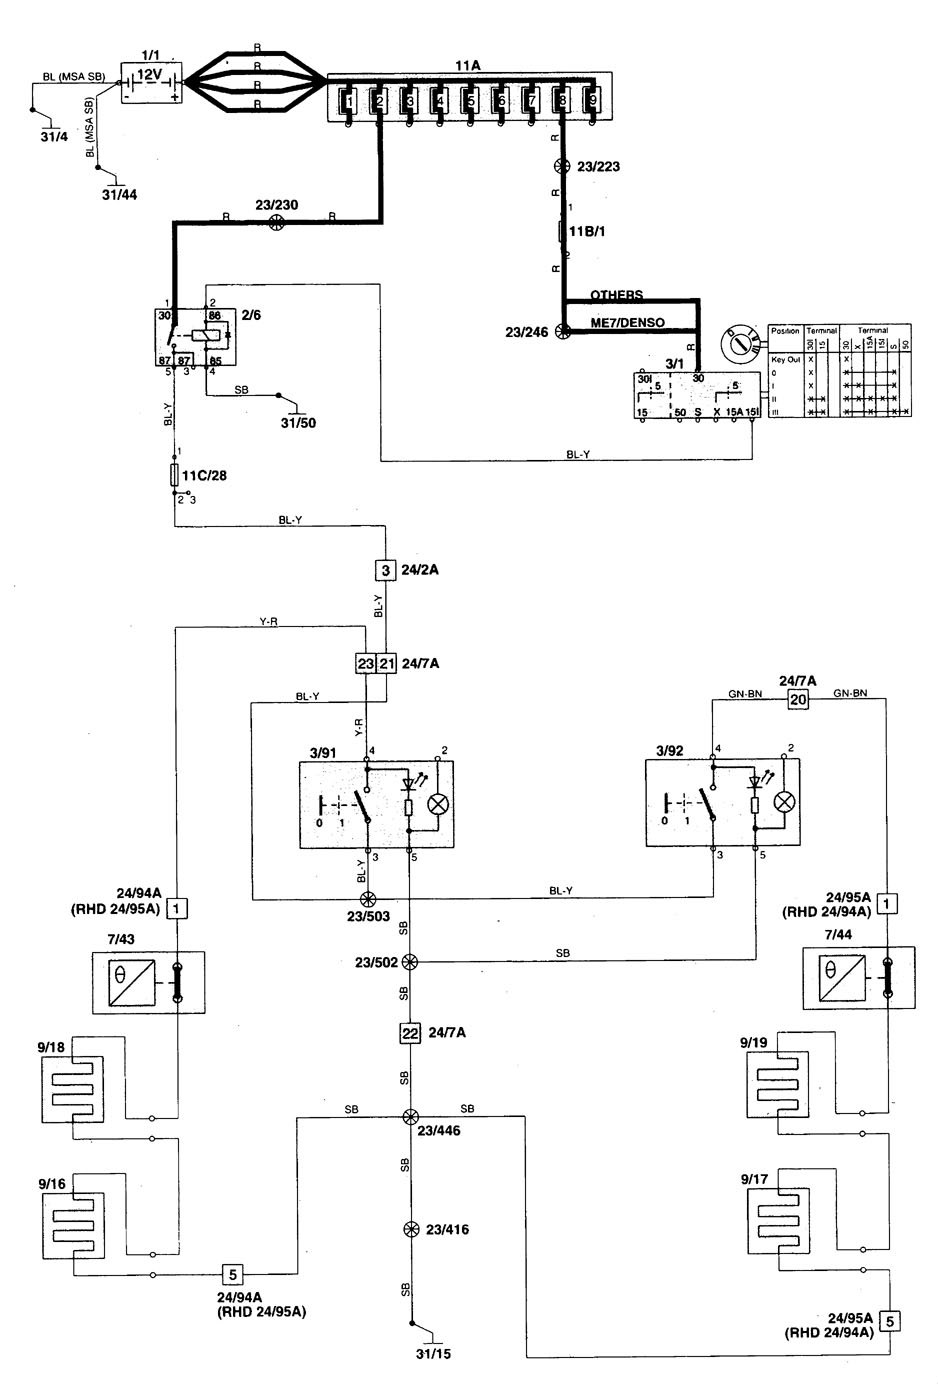 volvo c70 engine diagram studying wiring diagram u2022 rh nepaltravel co